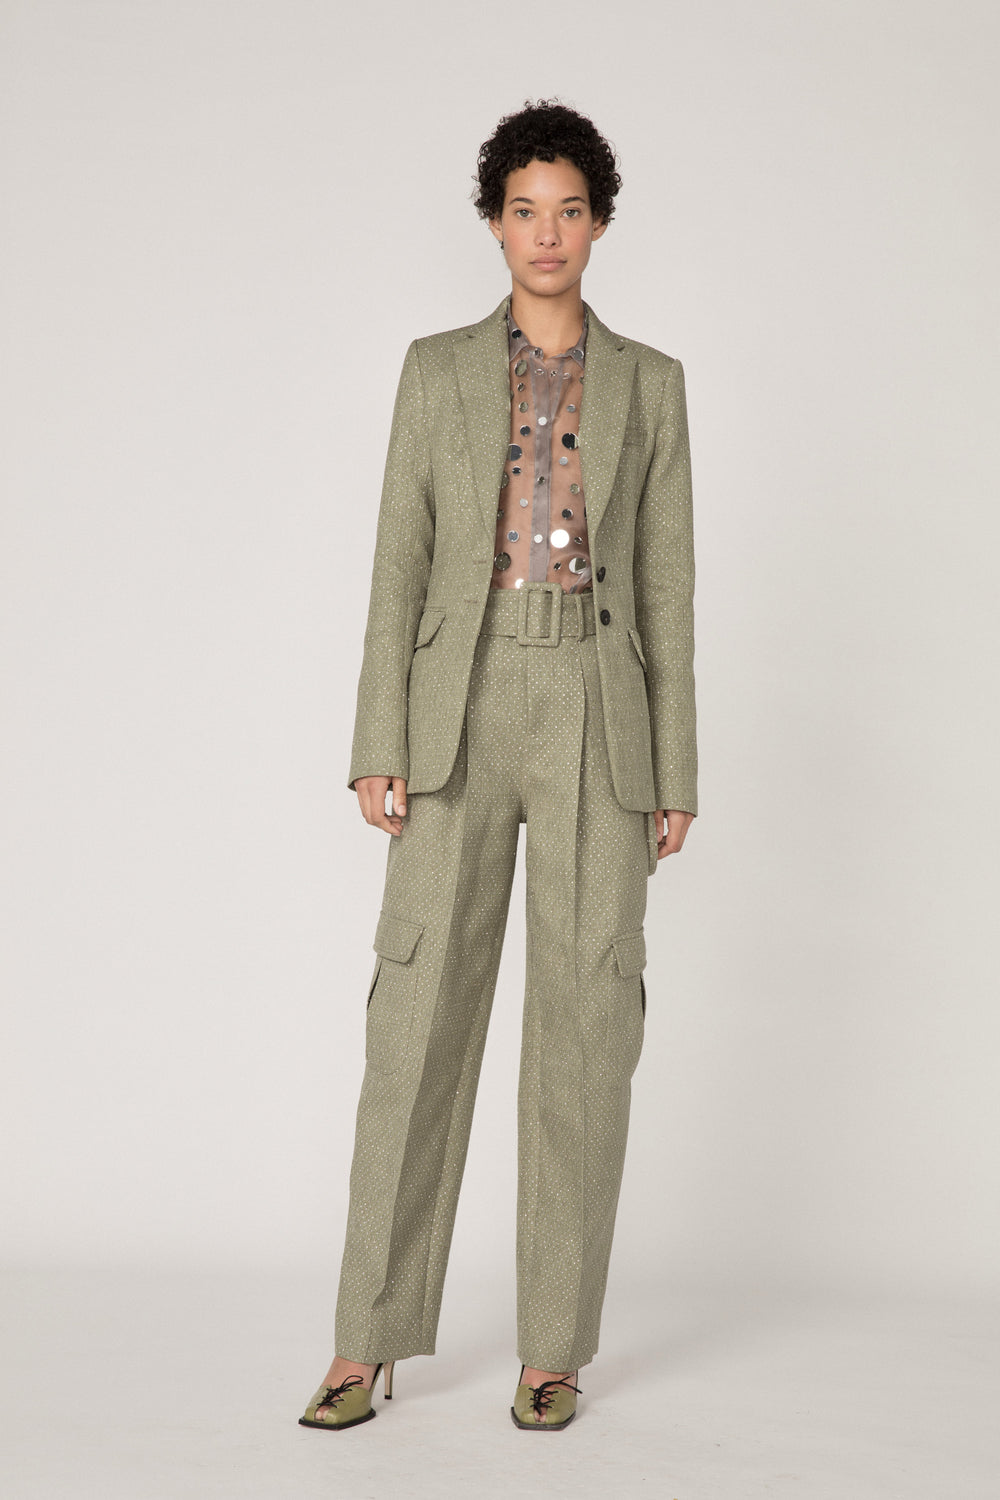 Rosie Assoulin Fall 2019 Belted Cargo Pant. High-waisted cargo pant. Four extra-large side pockets. Hook closures. Removable belt. Green. 66% Polyester, 34% Cotton. Sizes 0 - 12.